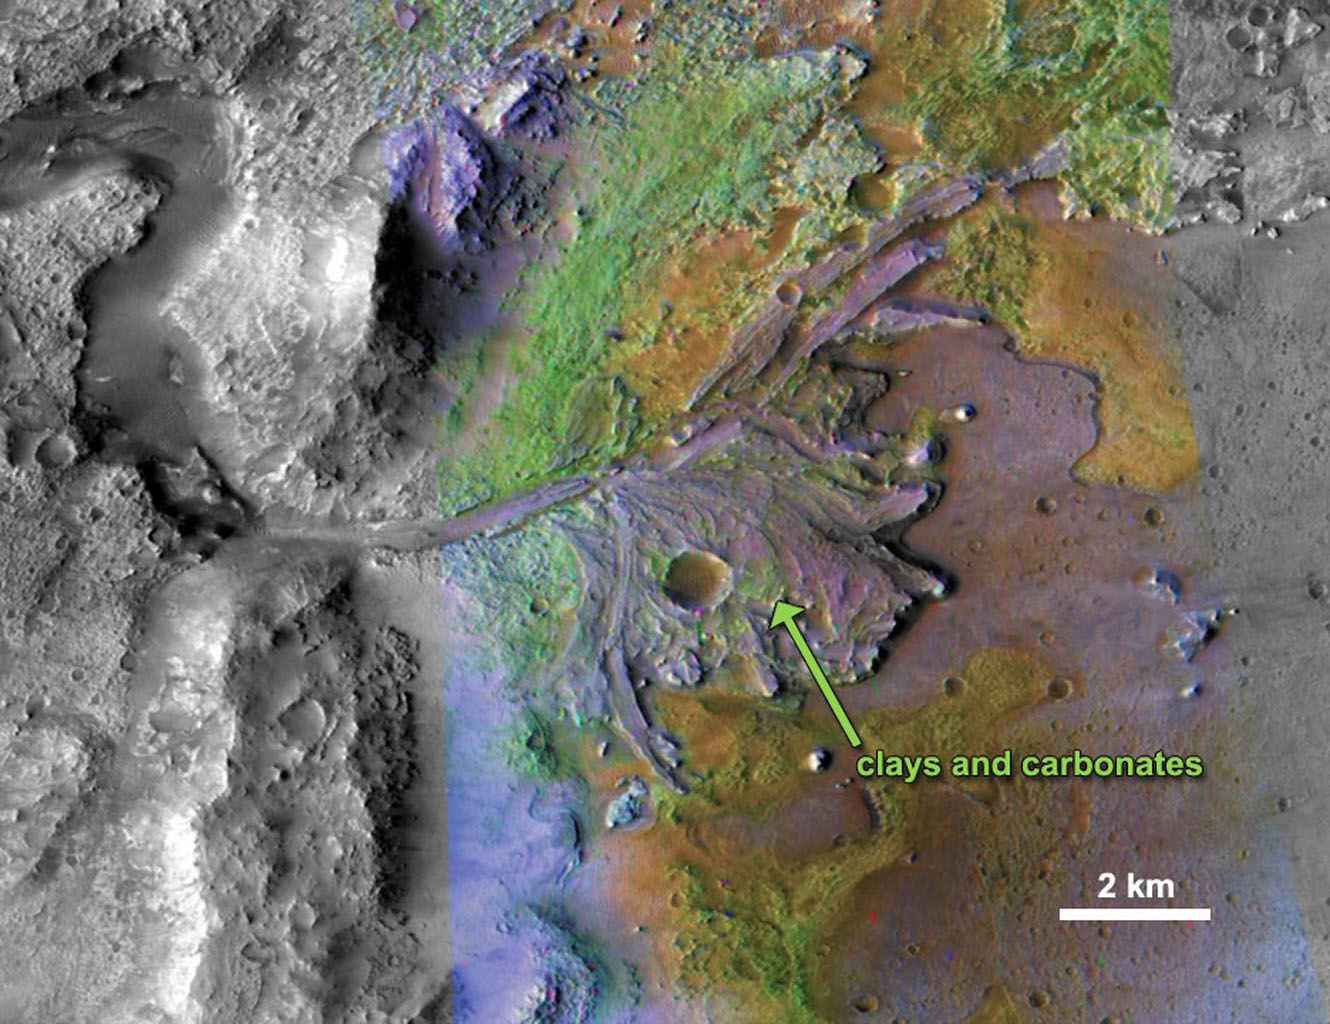 On ancient Mars, water carved channels and transported sediments to form fans and deltas within lake basins. Spectral data acquired by NASA's Mars Reconnaissance Orbiter, indicate chemical alteration by water.